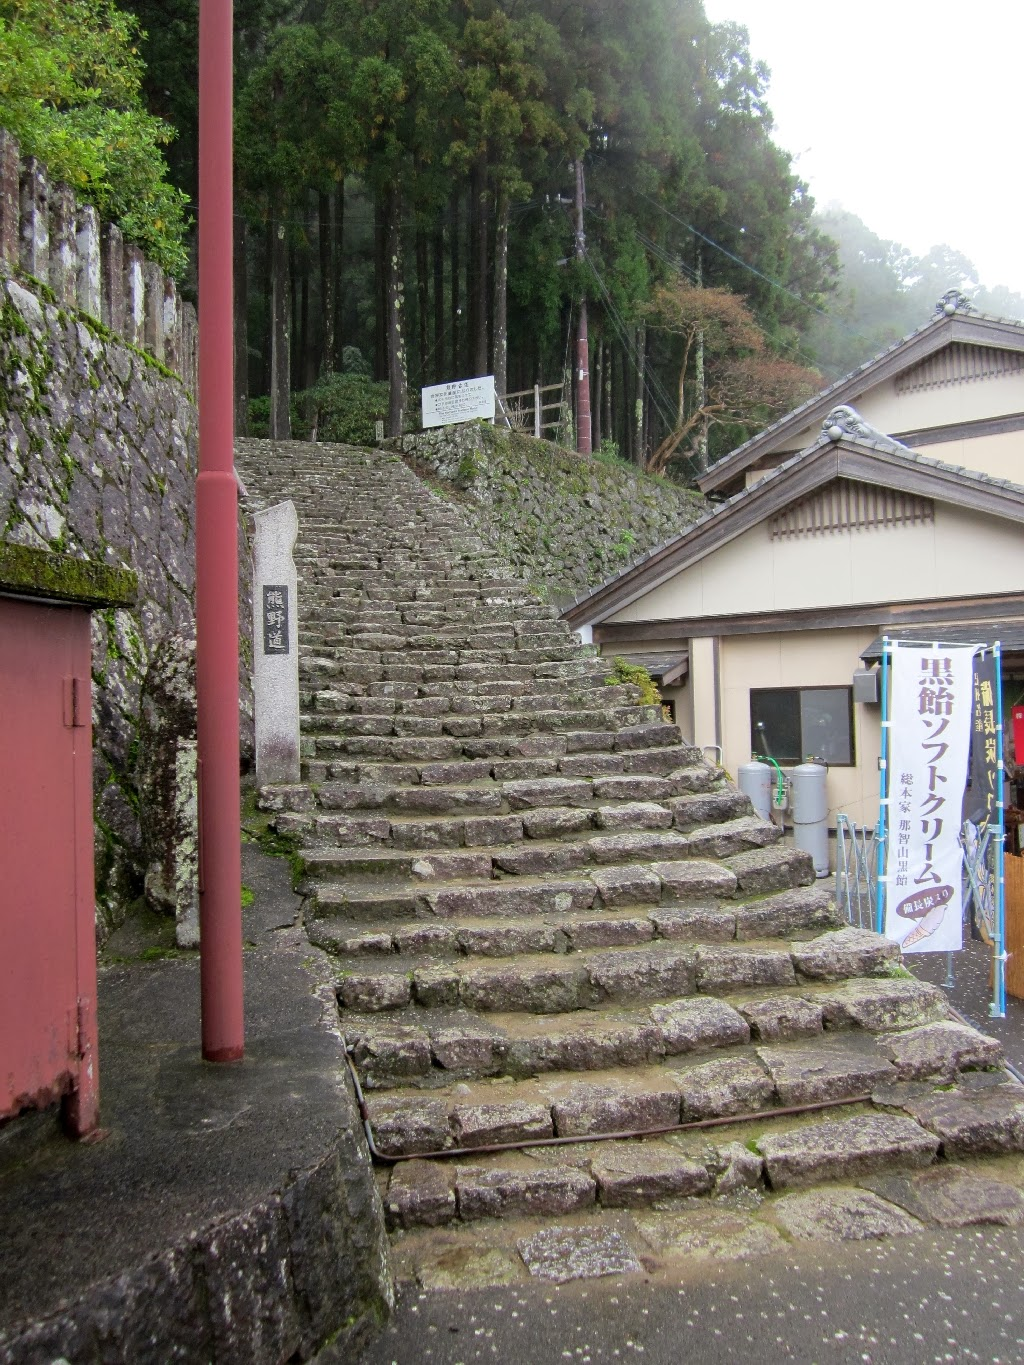 Section of pilgrim path, Kumano Kodo